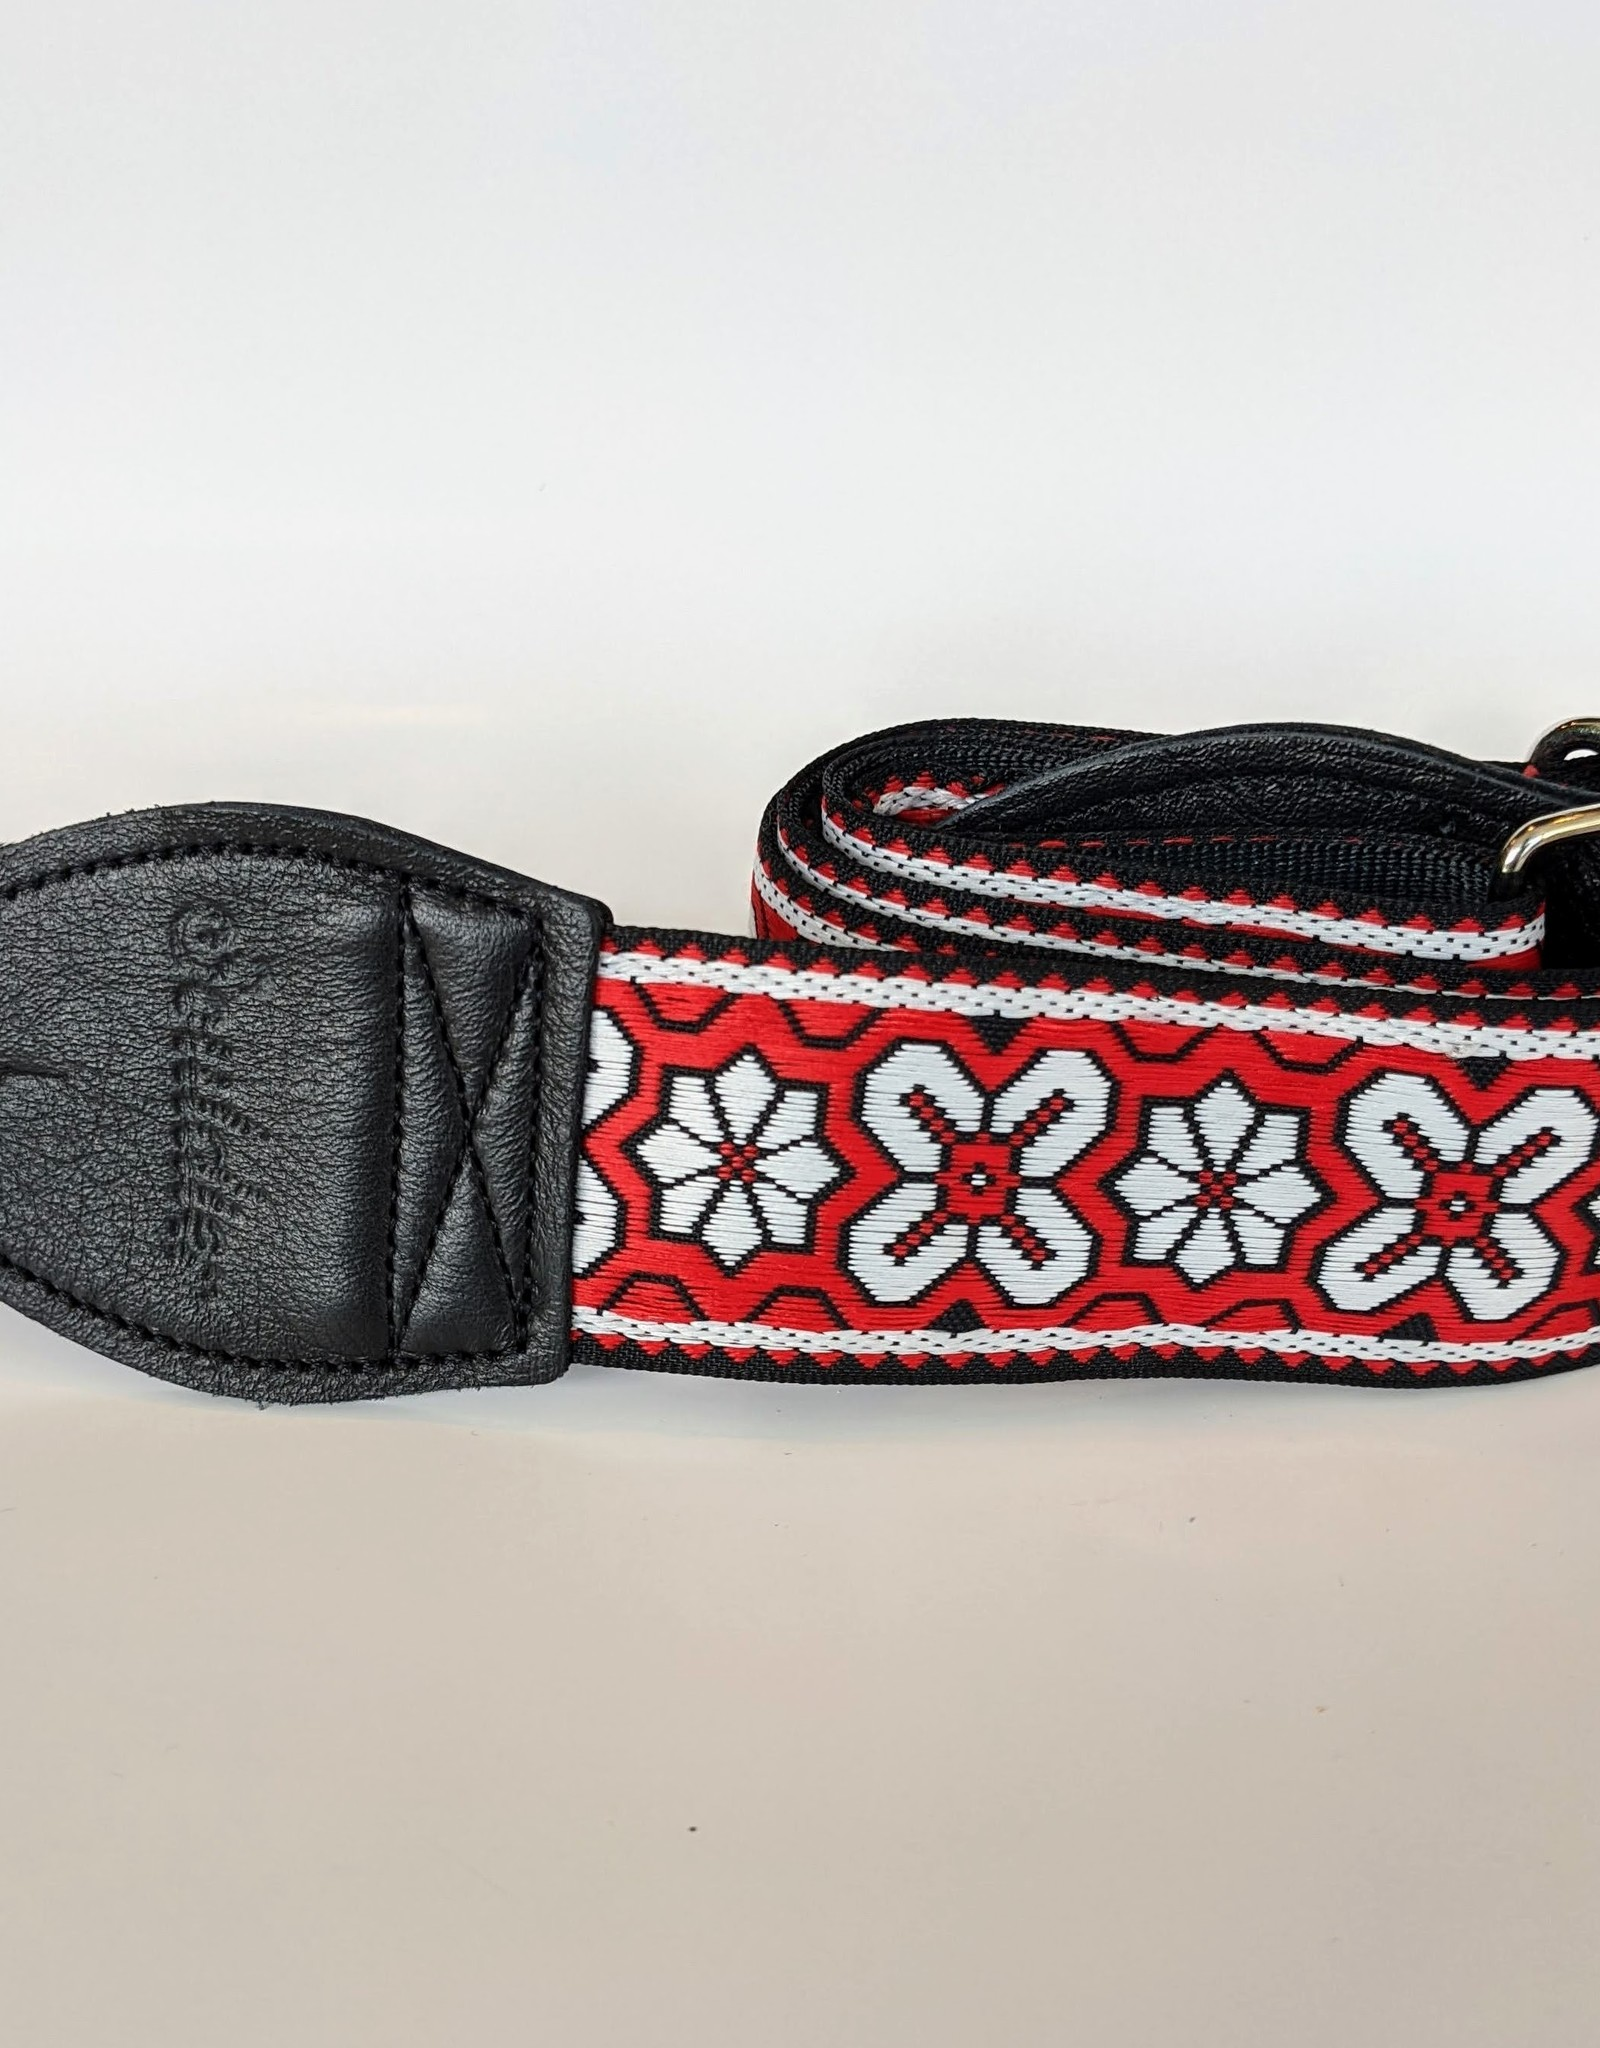 Souldier Souldier Greenwich White on Red, Vintage Fabric Guitar Strap